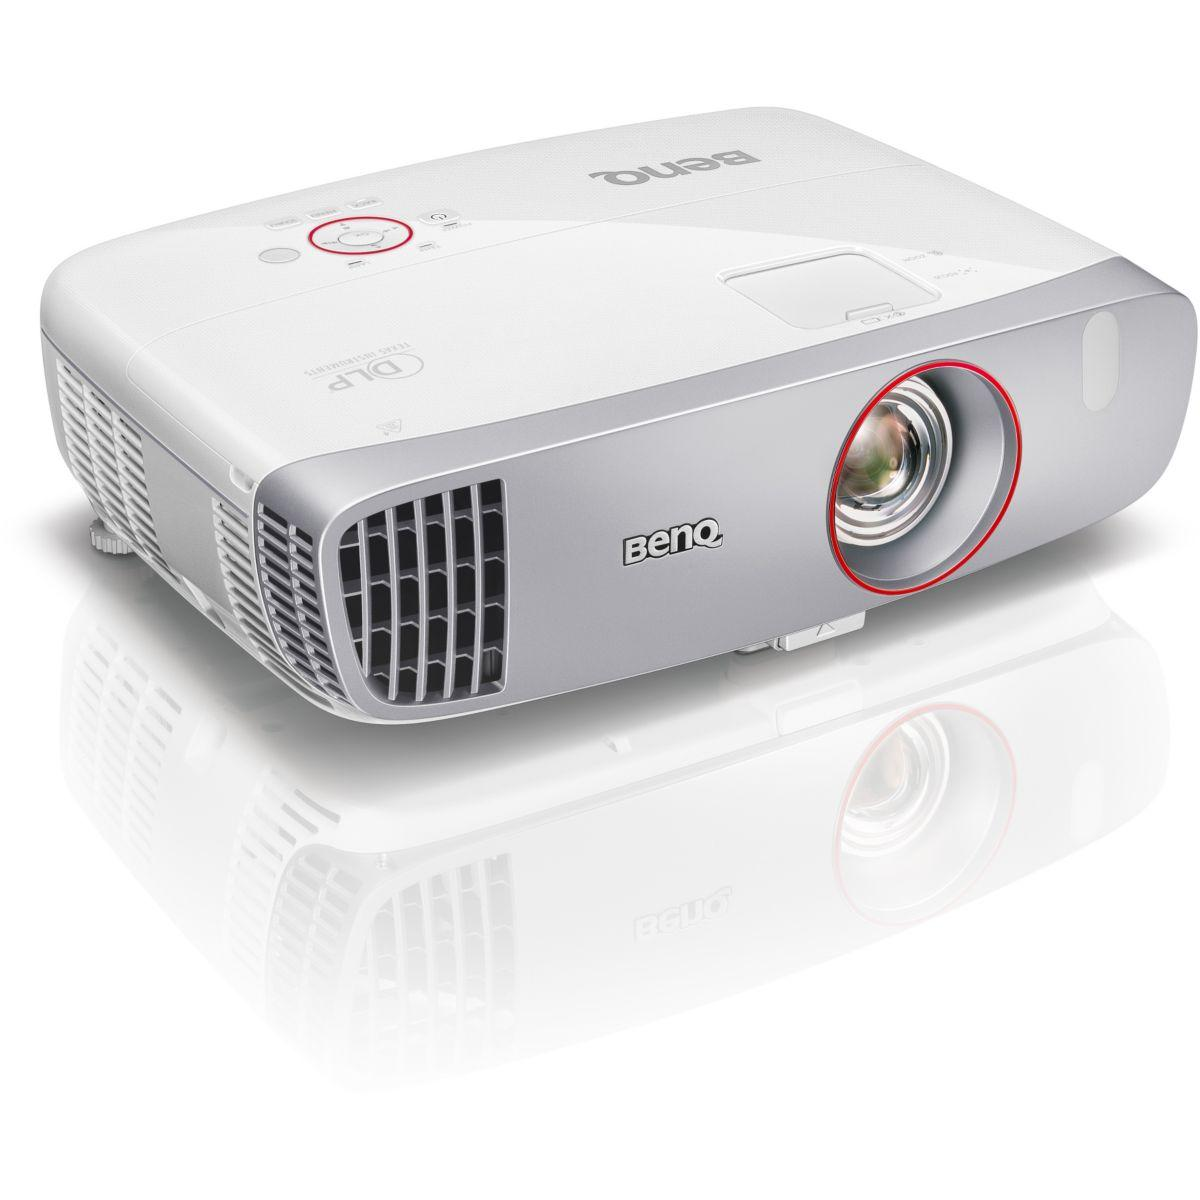 Vid�oprojecteur home cin�ma benq w1210st (photo)